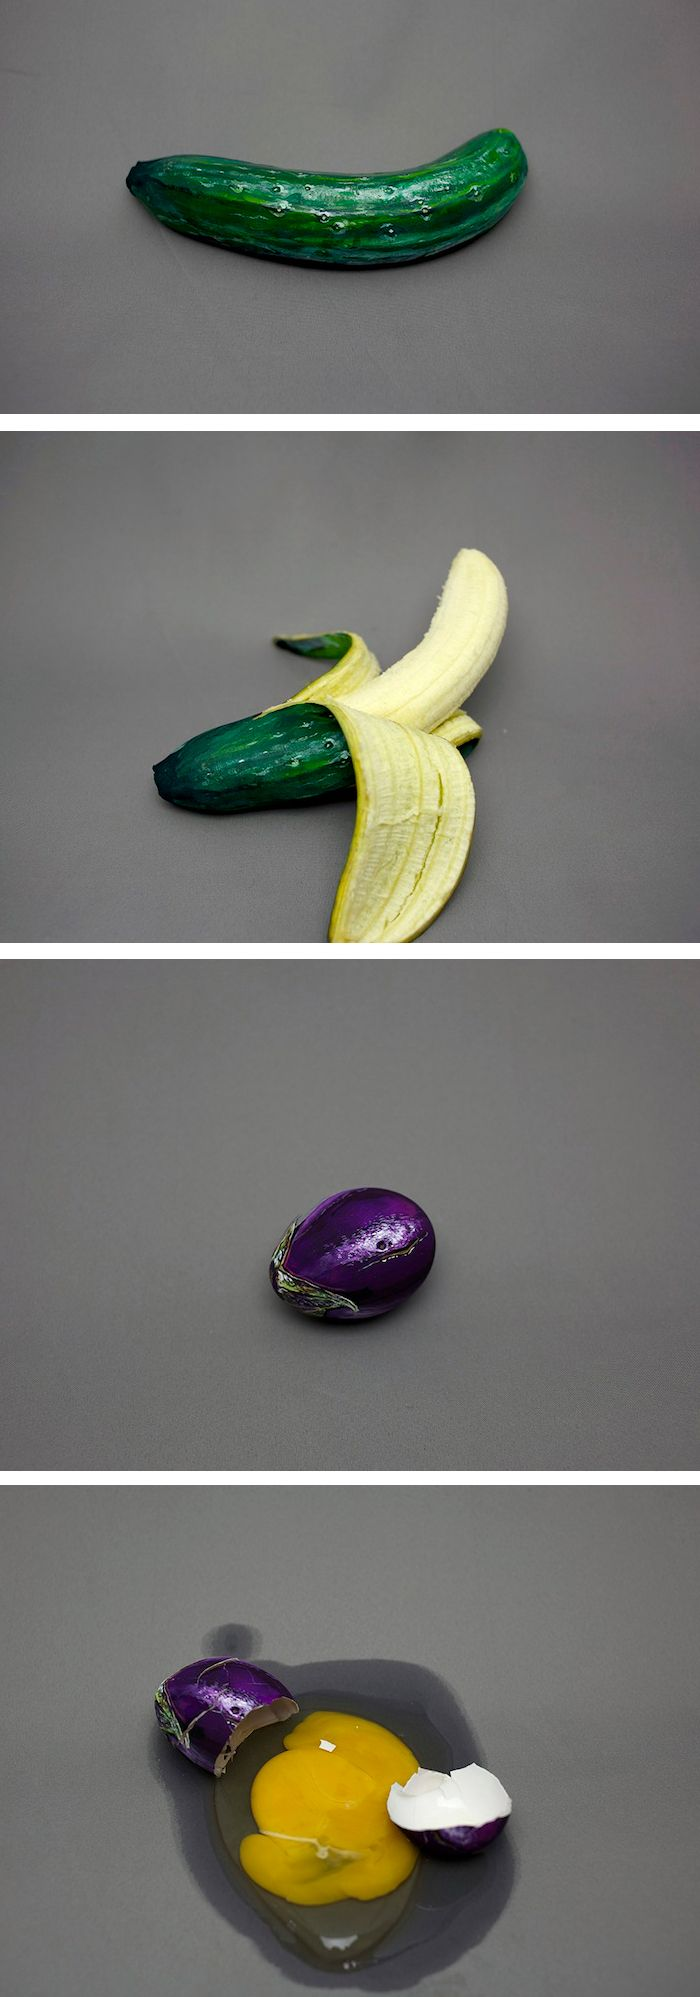 Photos illusion car moving optical illusion spectacular optical - Optical Illusions Make Food Look Differently Than What It Is Hyperrealistic Painting Fool